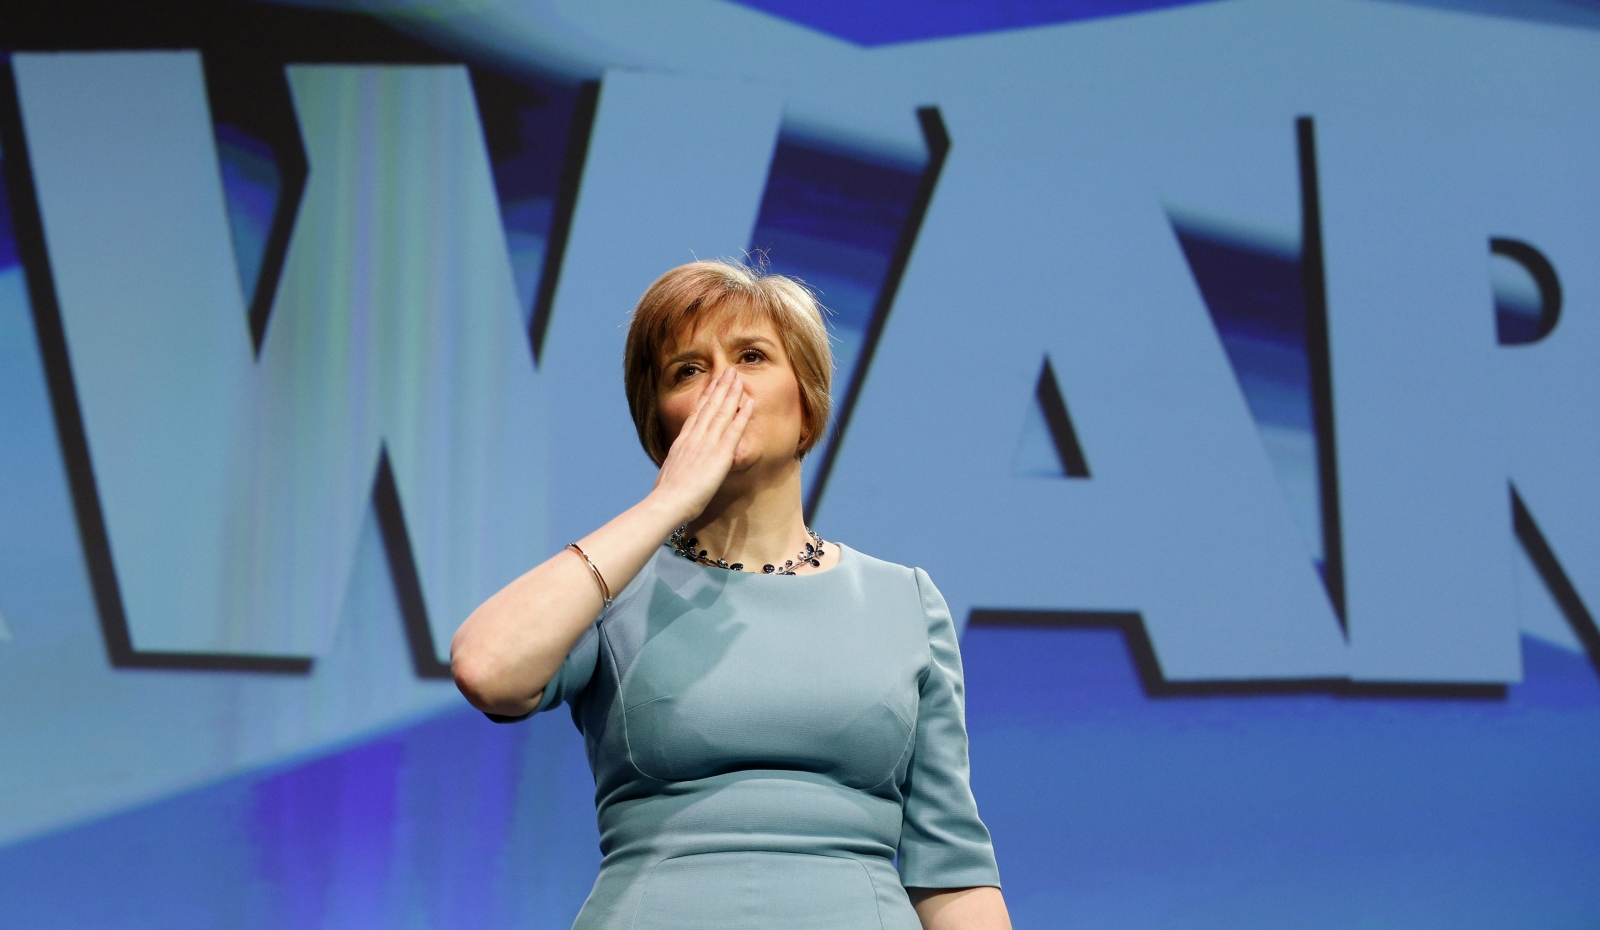 Scotland's Deputy First Minister Nicola Sturgeon blows a kiss following a speech in front of a Forward banner